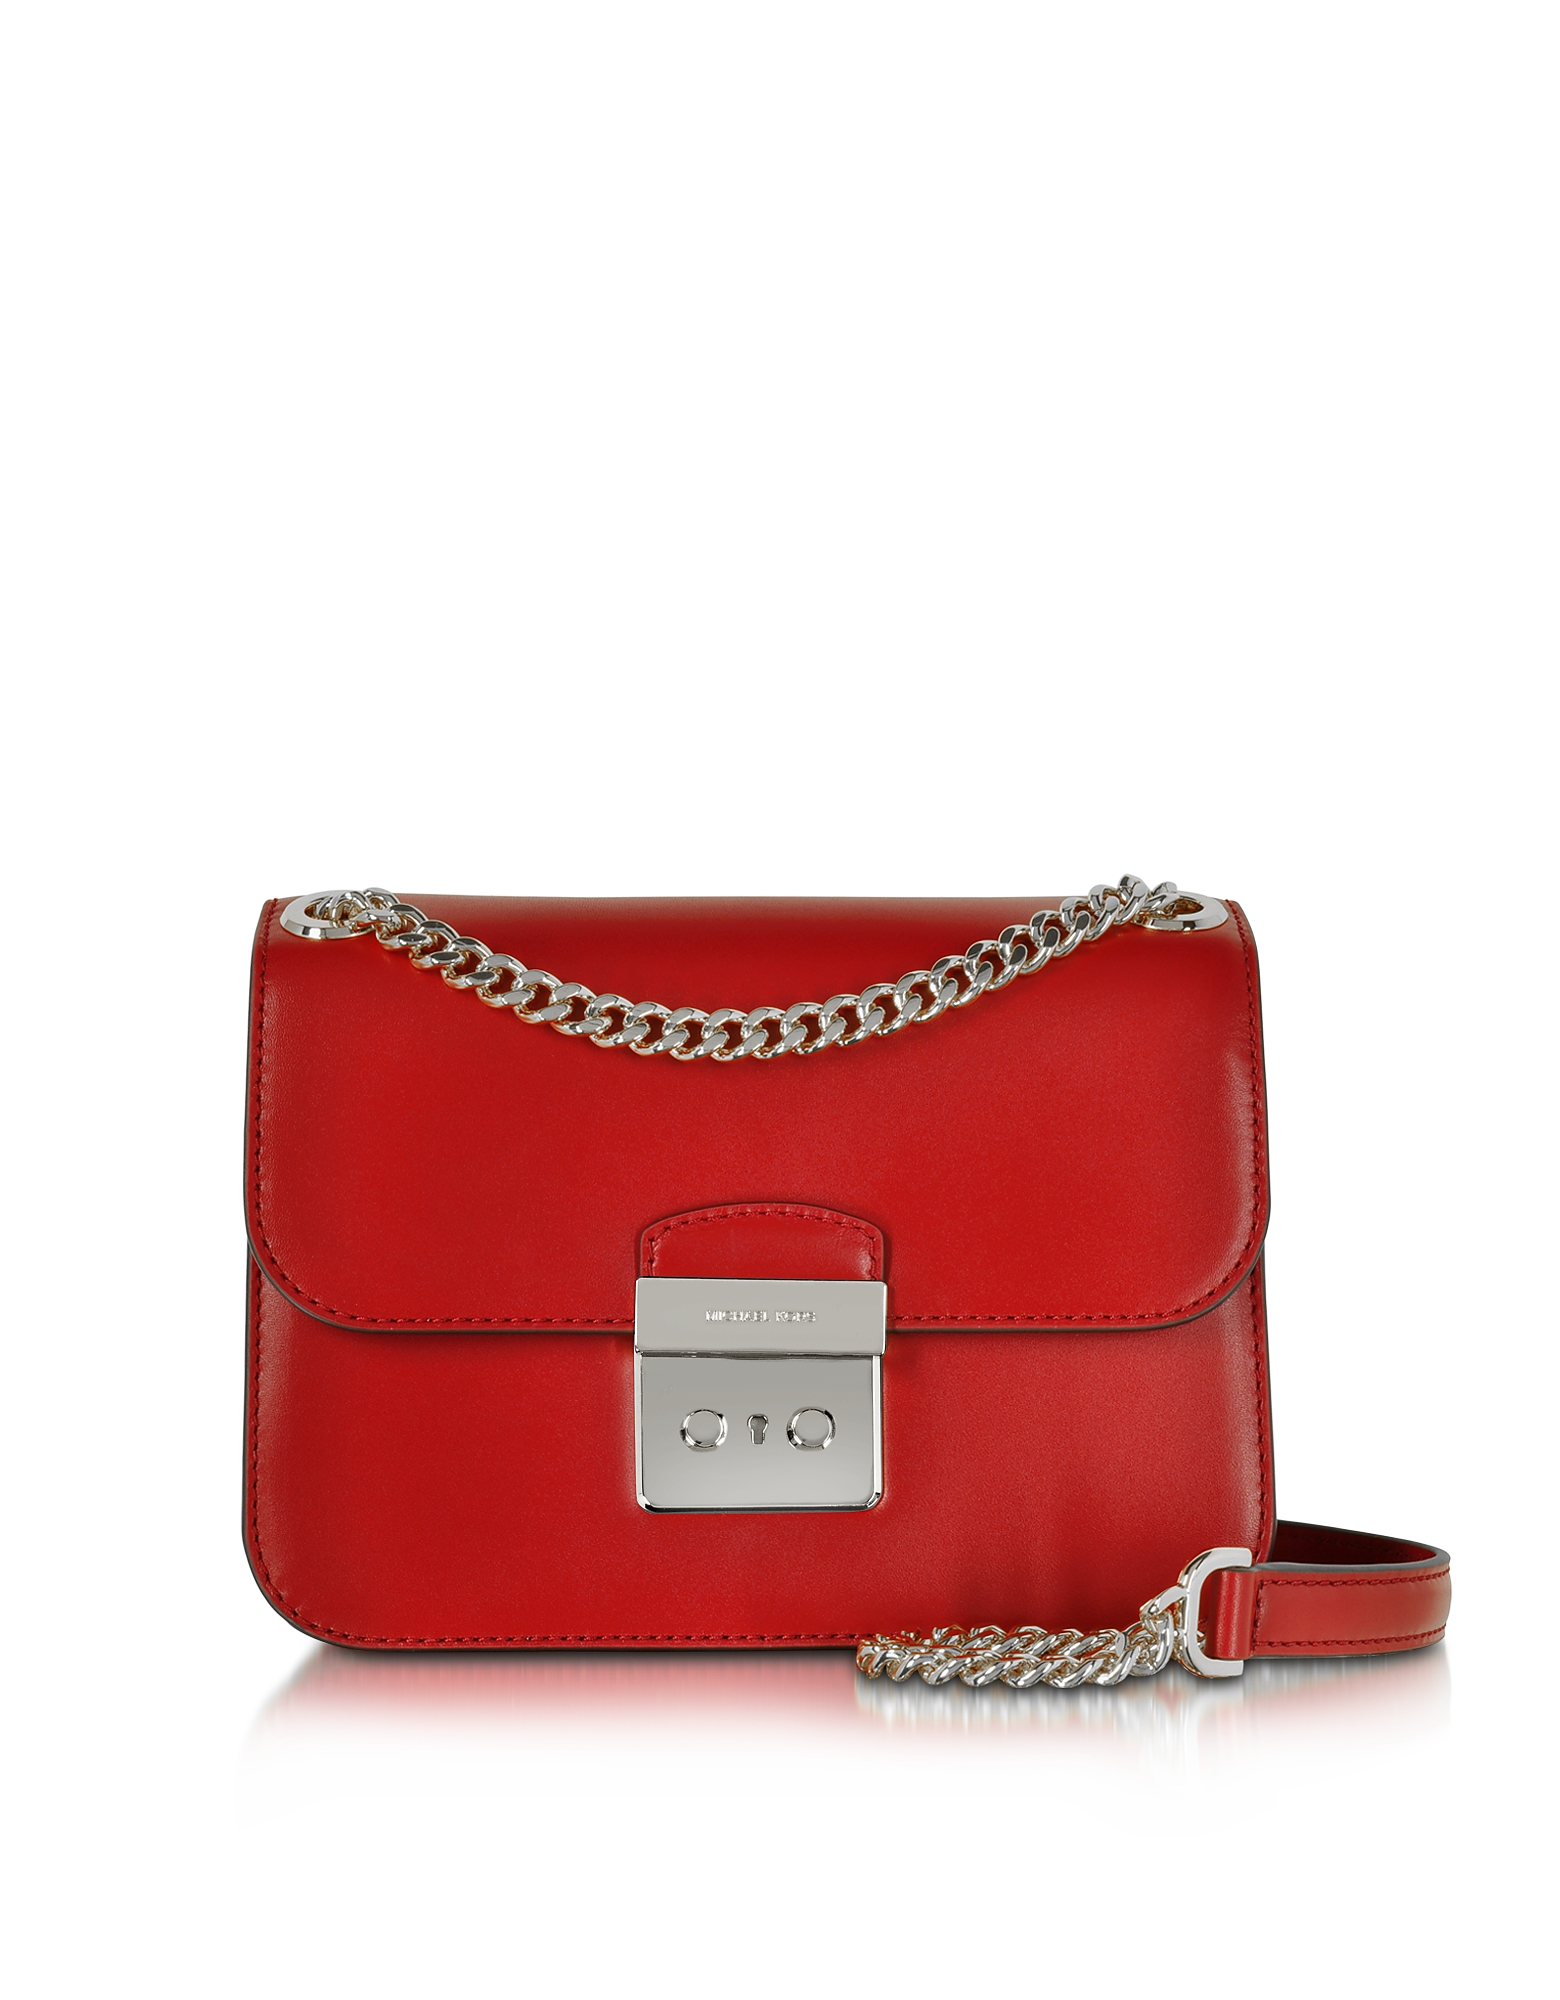 Michael Kors Sloan Editor Medium Bright Red Leather Chain Shoulder Bag